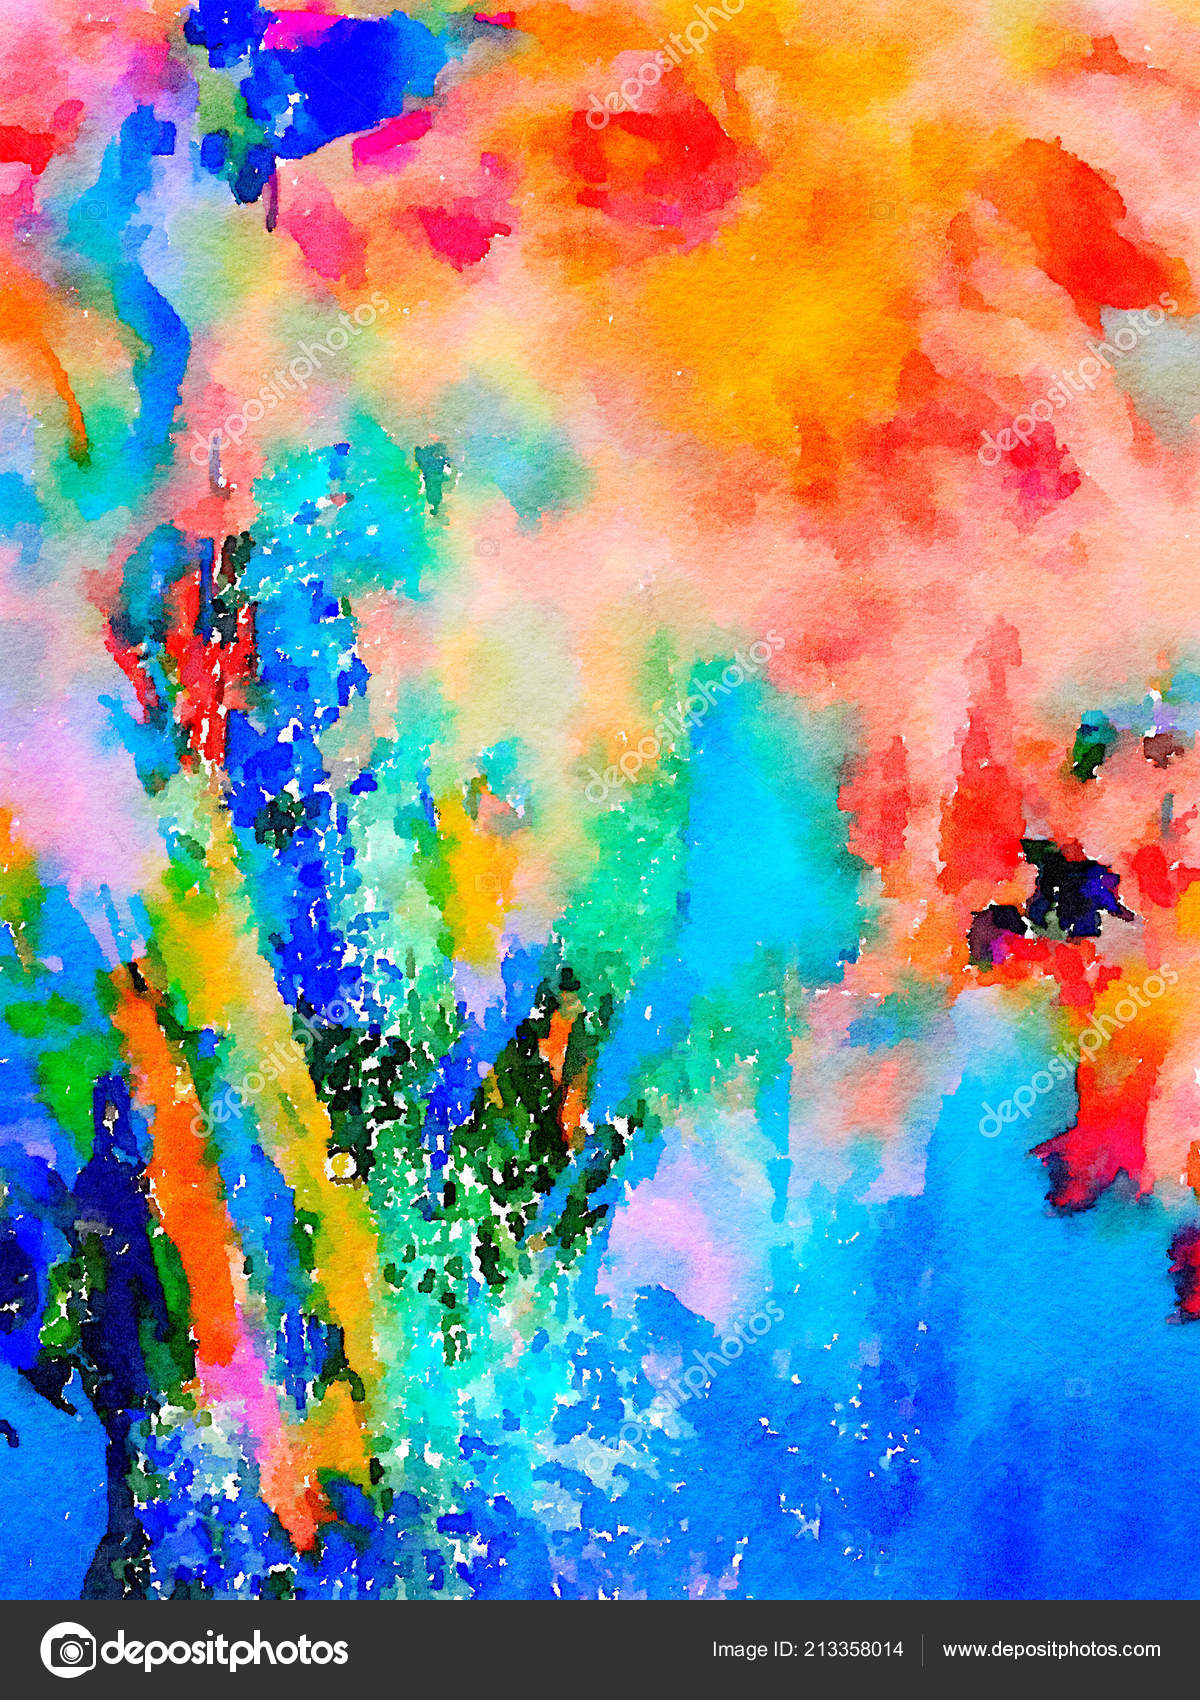 96388ced778e9 Watercolor painting abstract | Image Original Abstract Watercolor ...